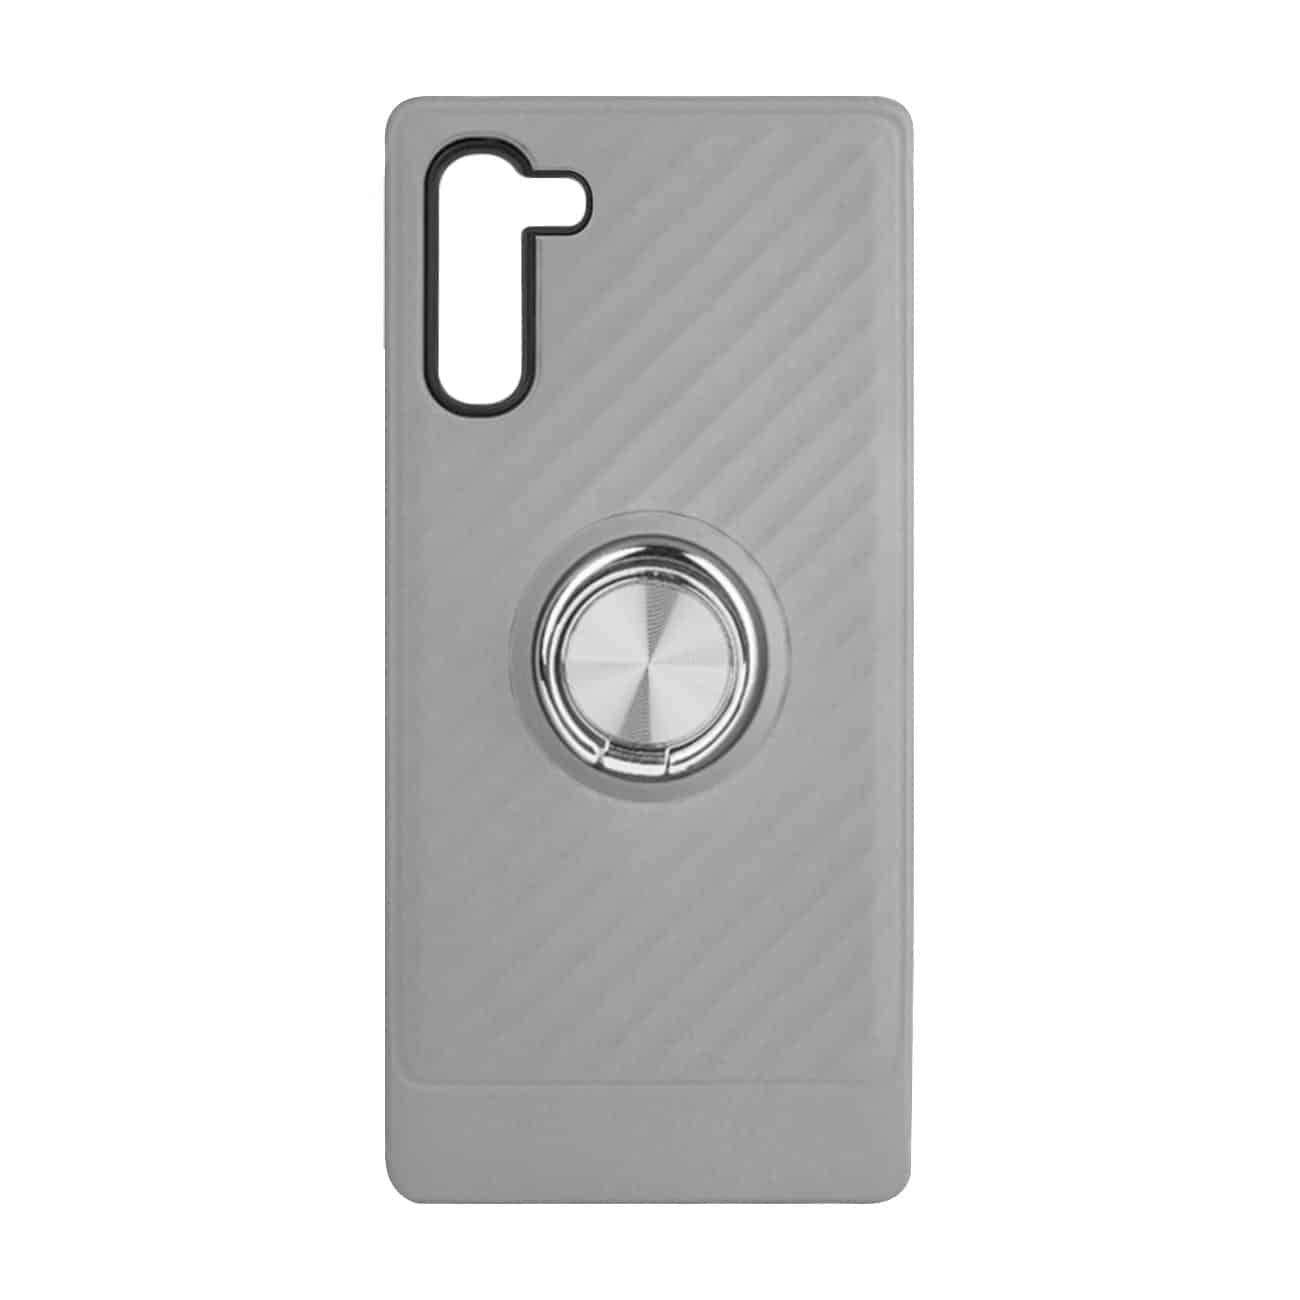 SAMSUNG GALAXY NOTE 10 Case with Ring Holder InSilver